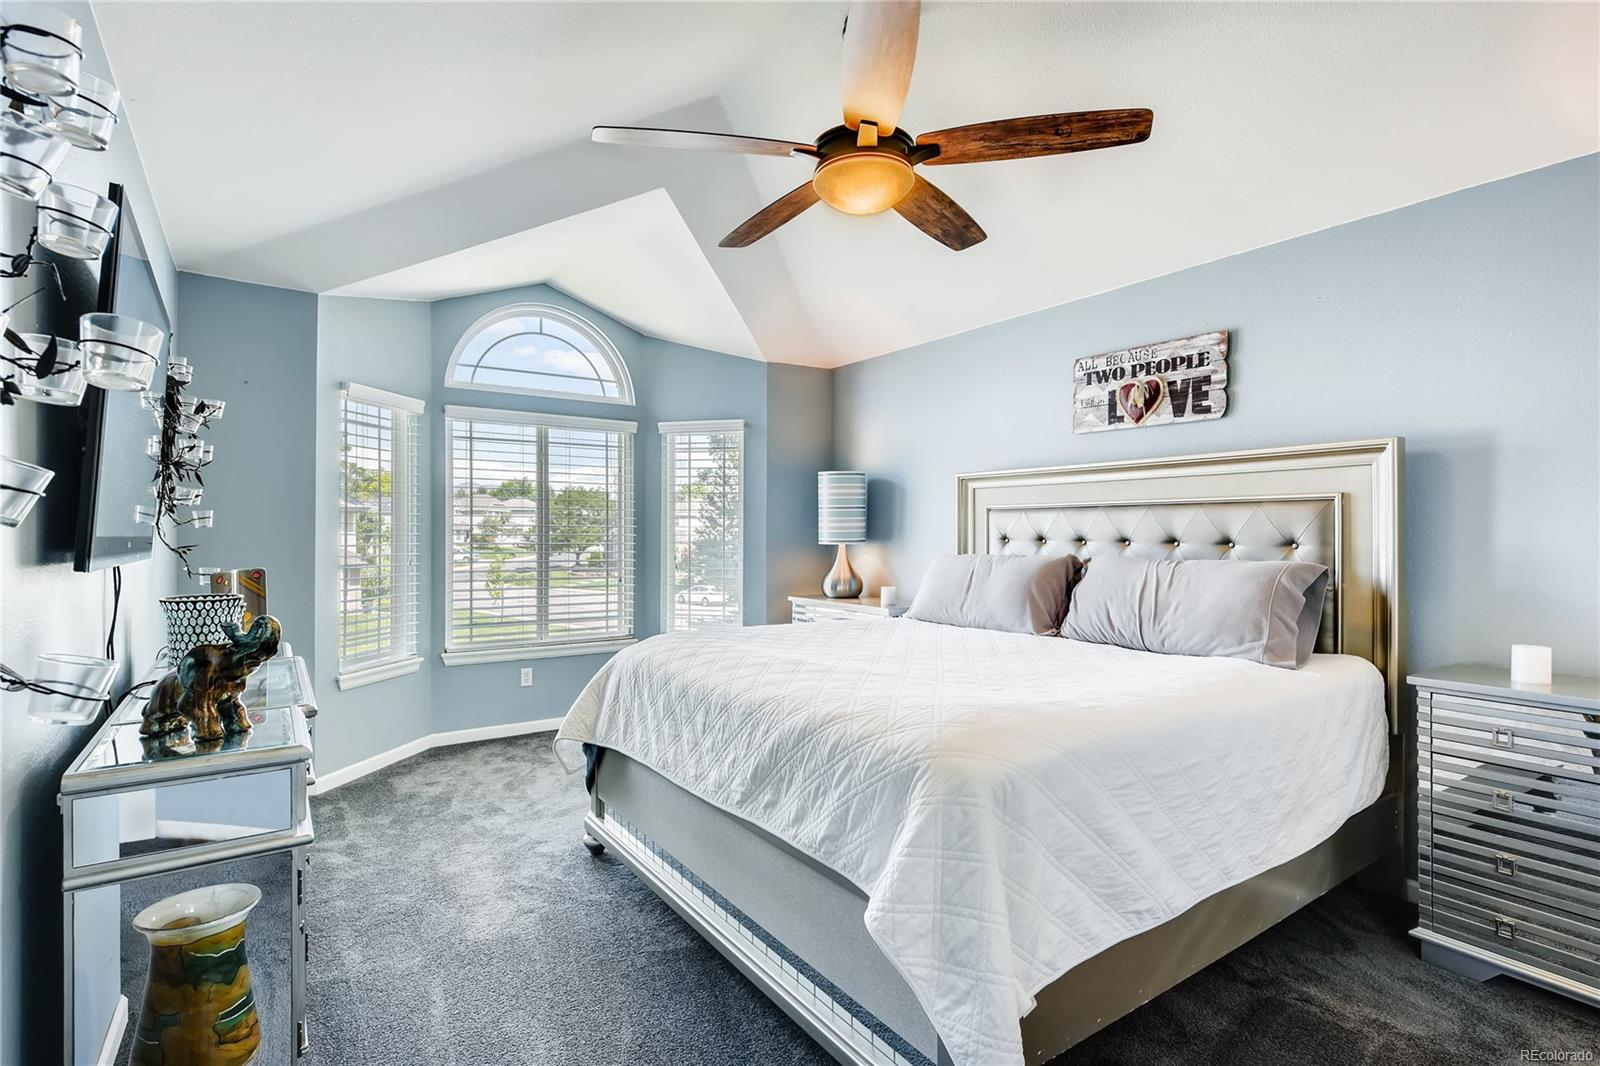 The master bedroom is a retreat from it all. The vaulted ceilings give it a luxurious feel.